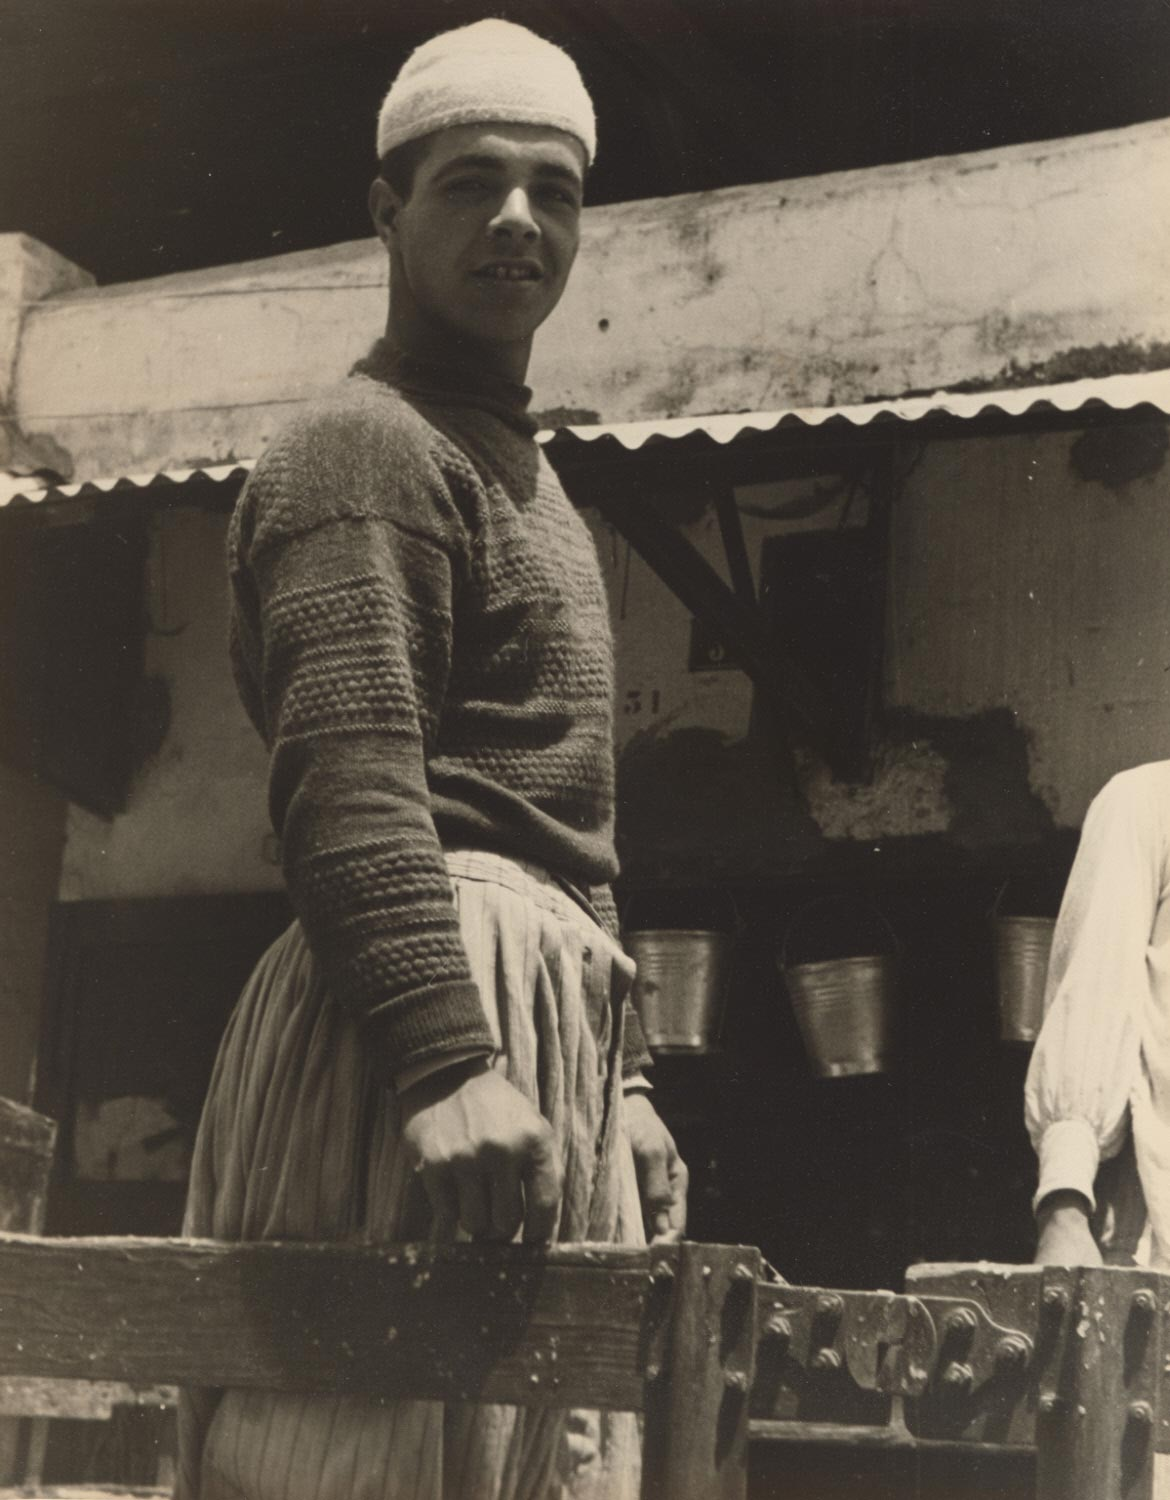 Achmed Mustapha, Fish Market, Tangier